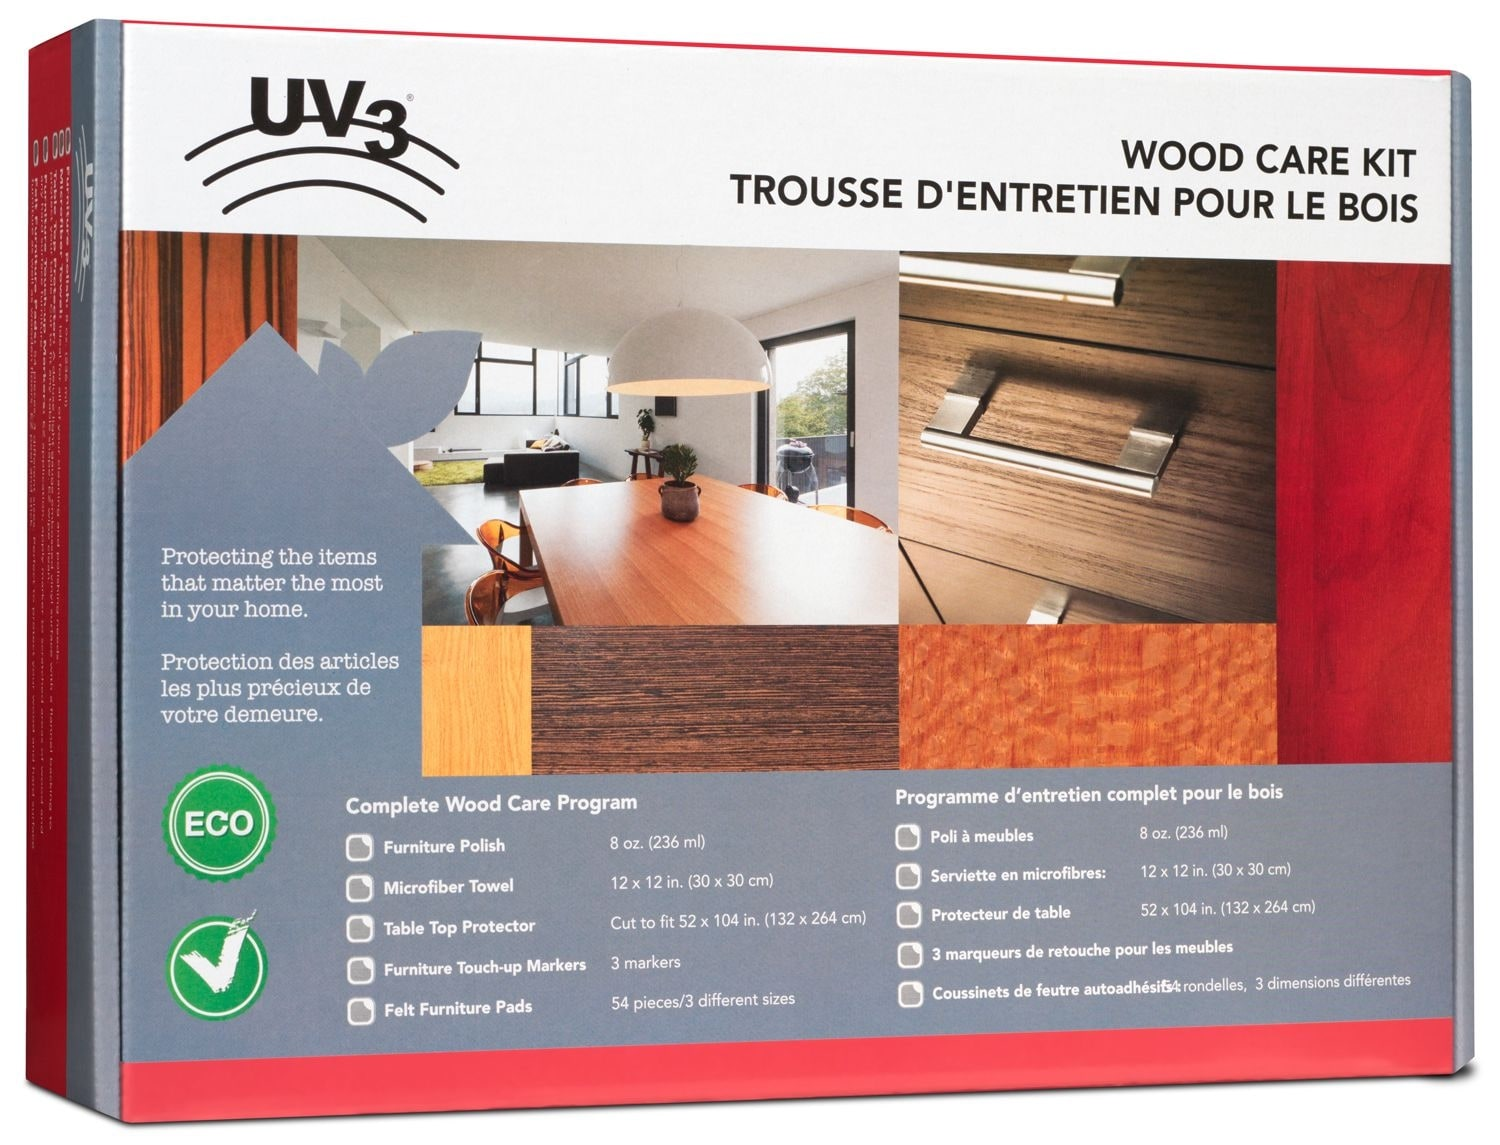 Living Room Furniture - UV3 Wood Furniture Care Kit